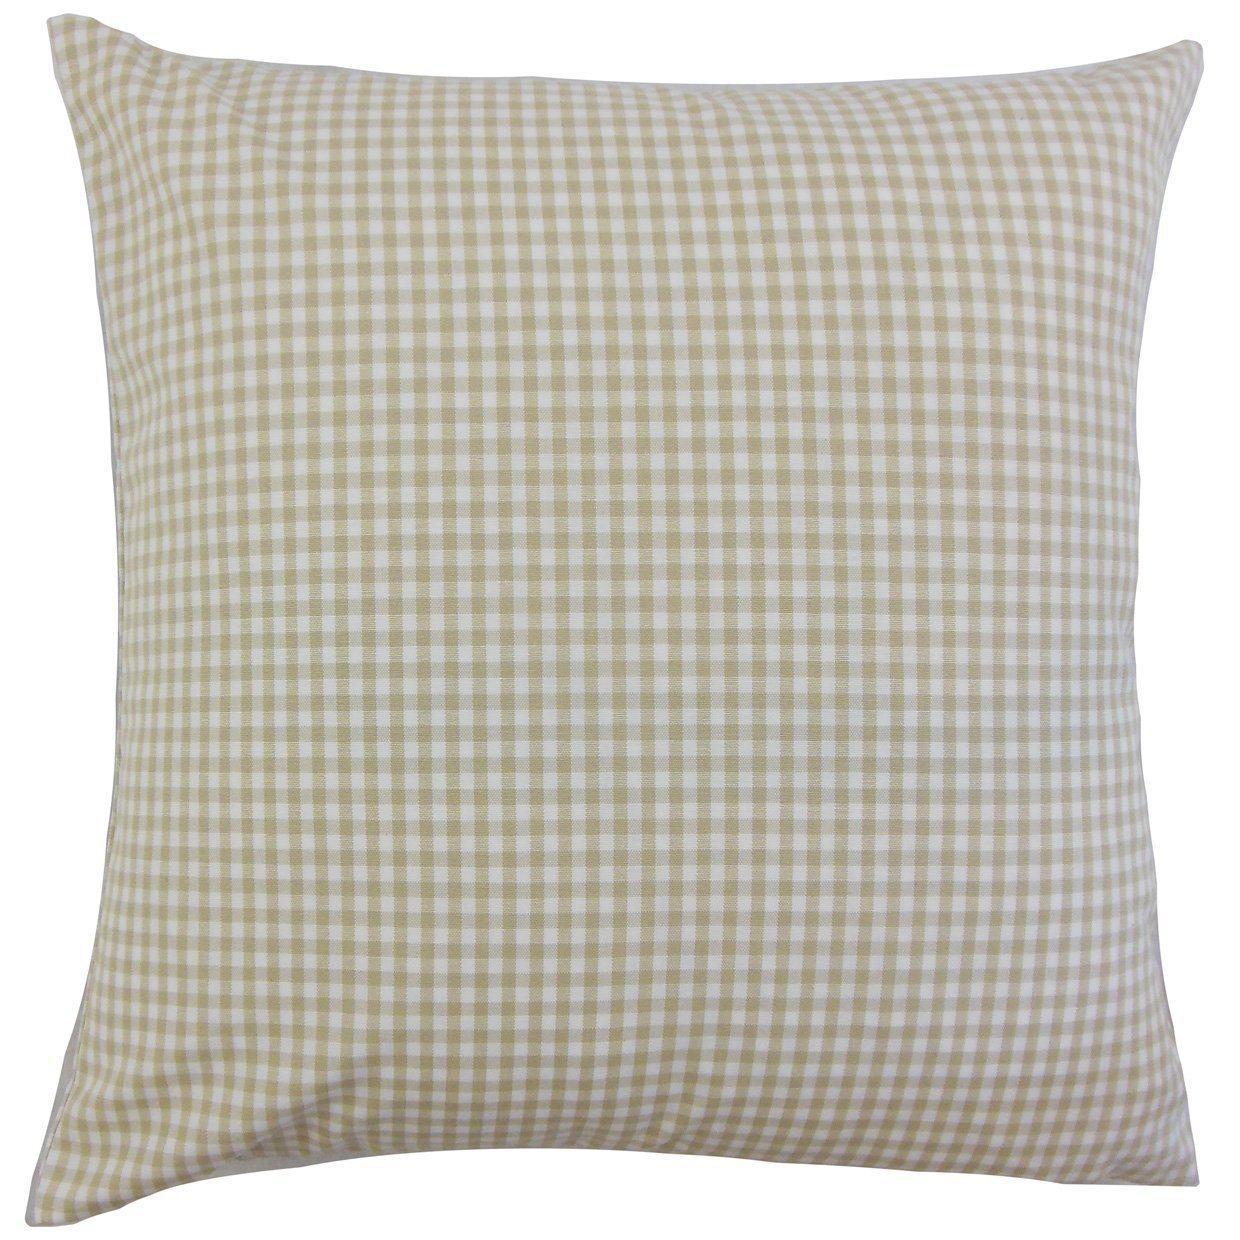 Yellow Cotton Plaid Preppy Throw Pillow Cover